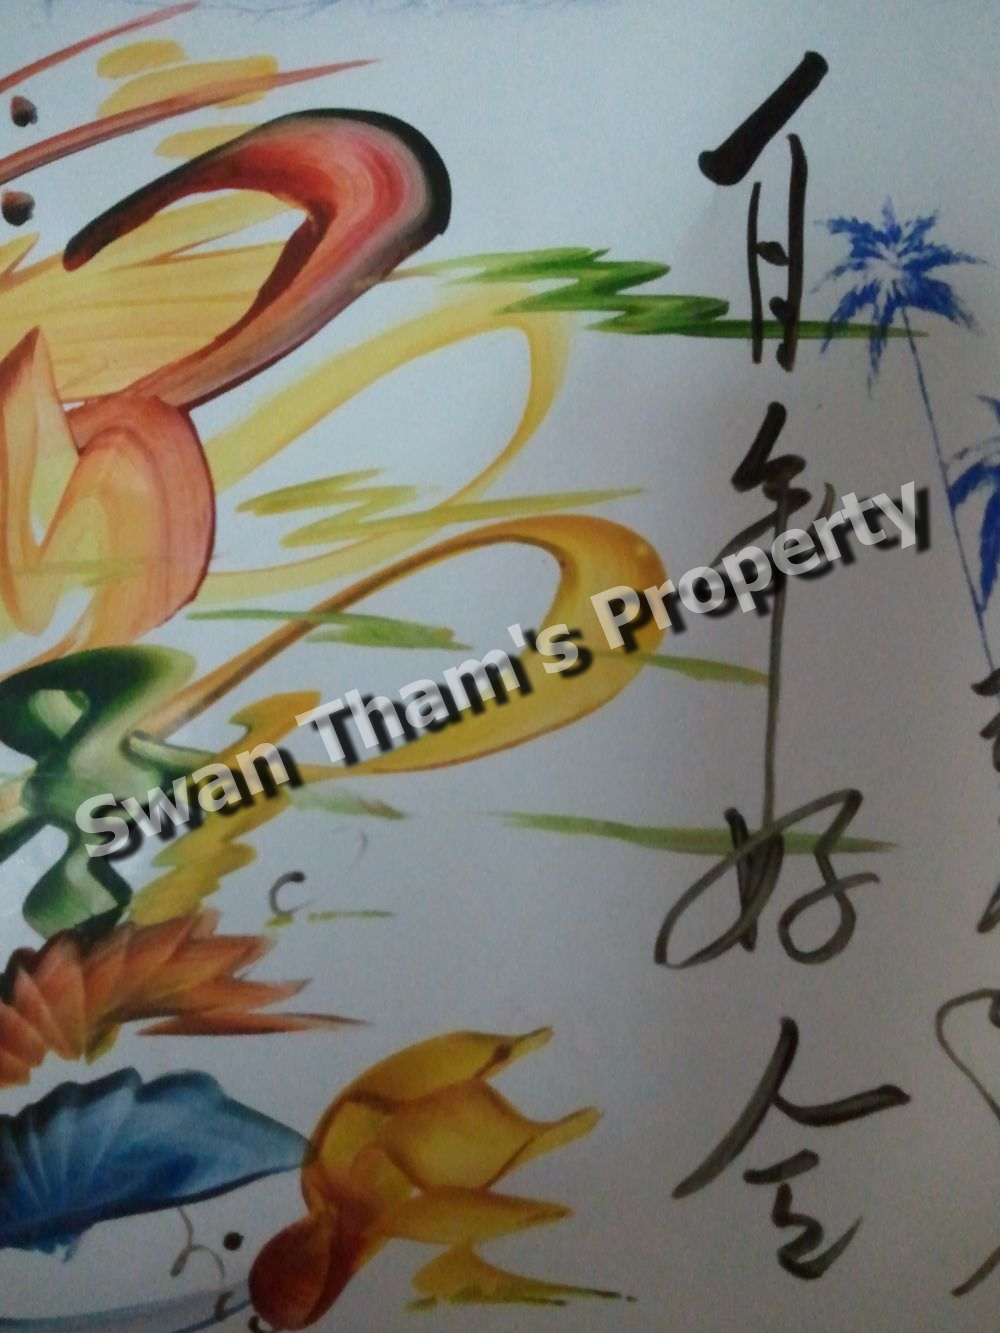 Swan tham blog chinese calligraphy my name in colorful chinese both of our name blend together in the chinese calligraphy with beautiful and colorful drawings that form each of the words there are a greetings or wishes m4hsunfo